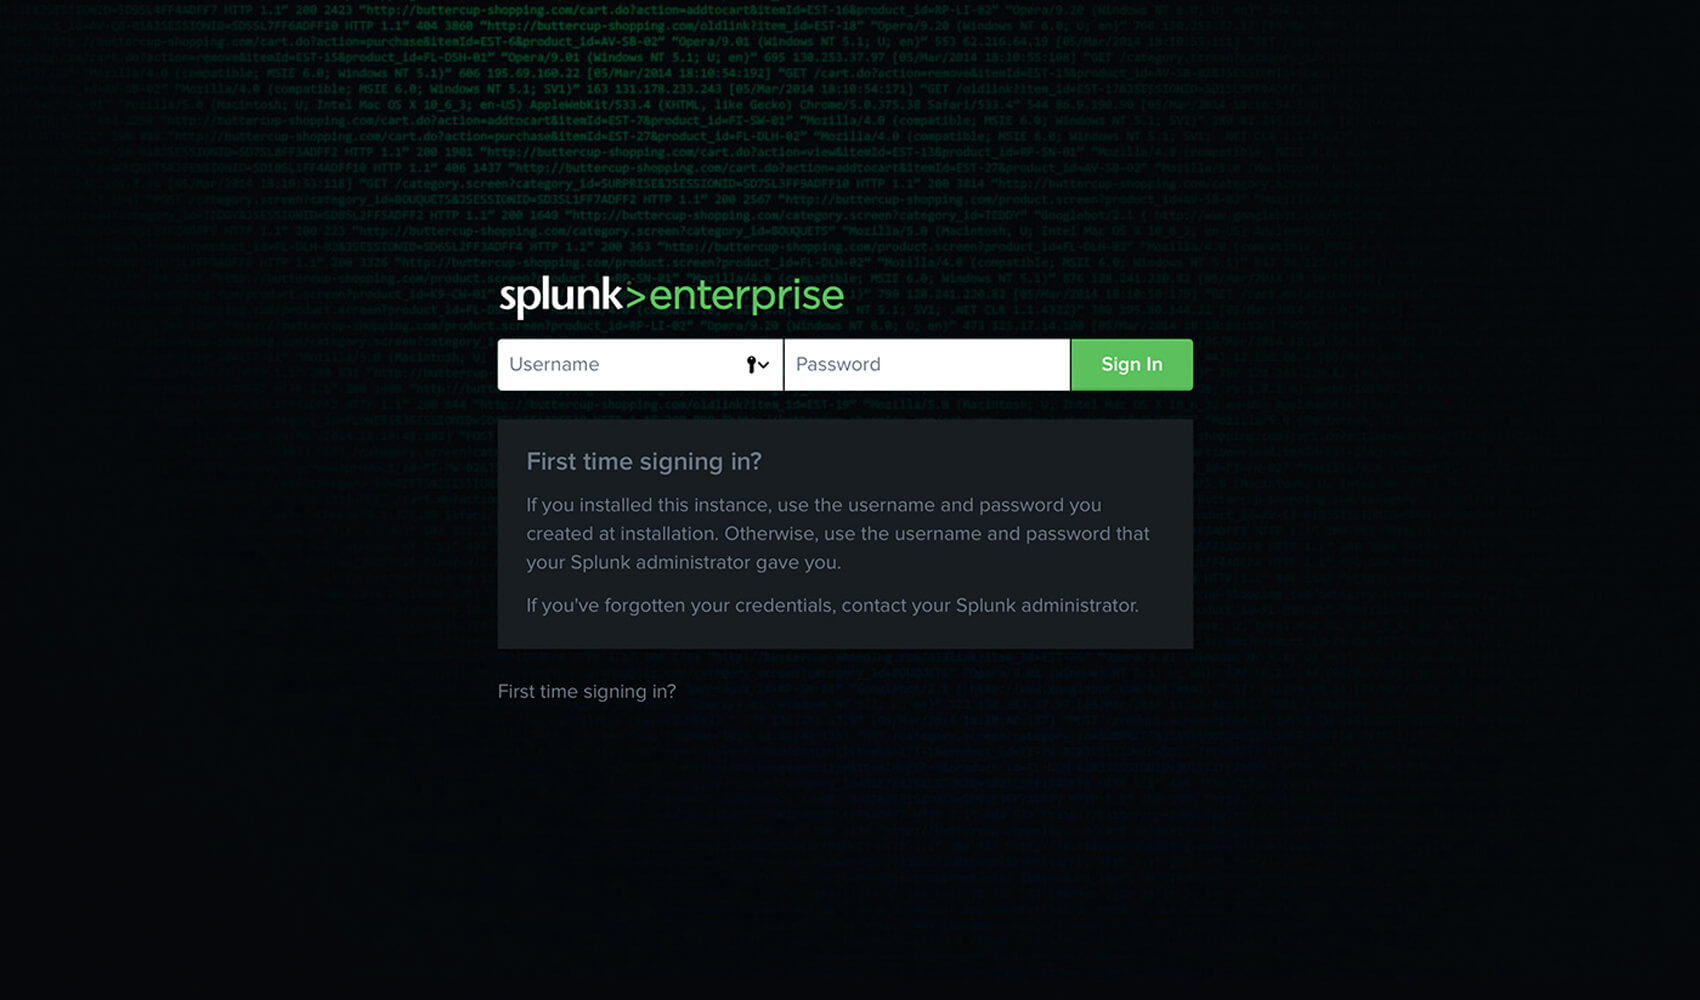 Log in to Splunk.